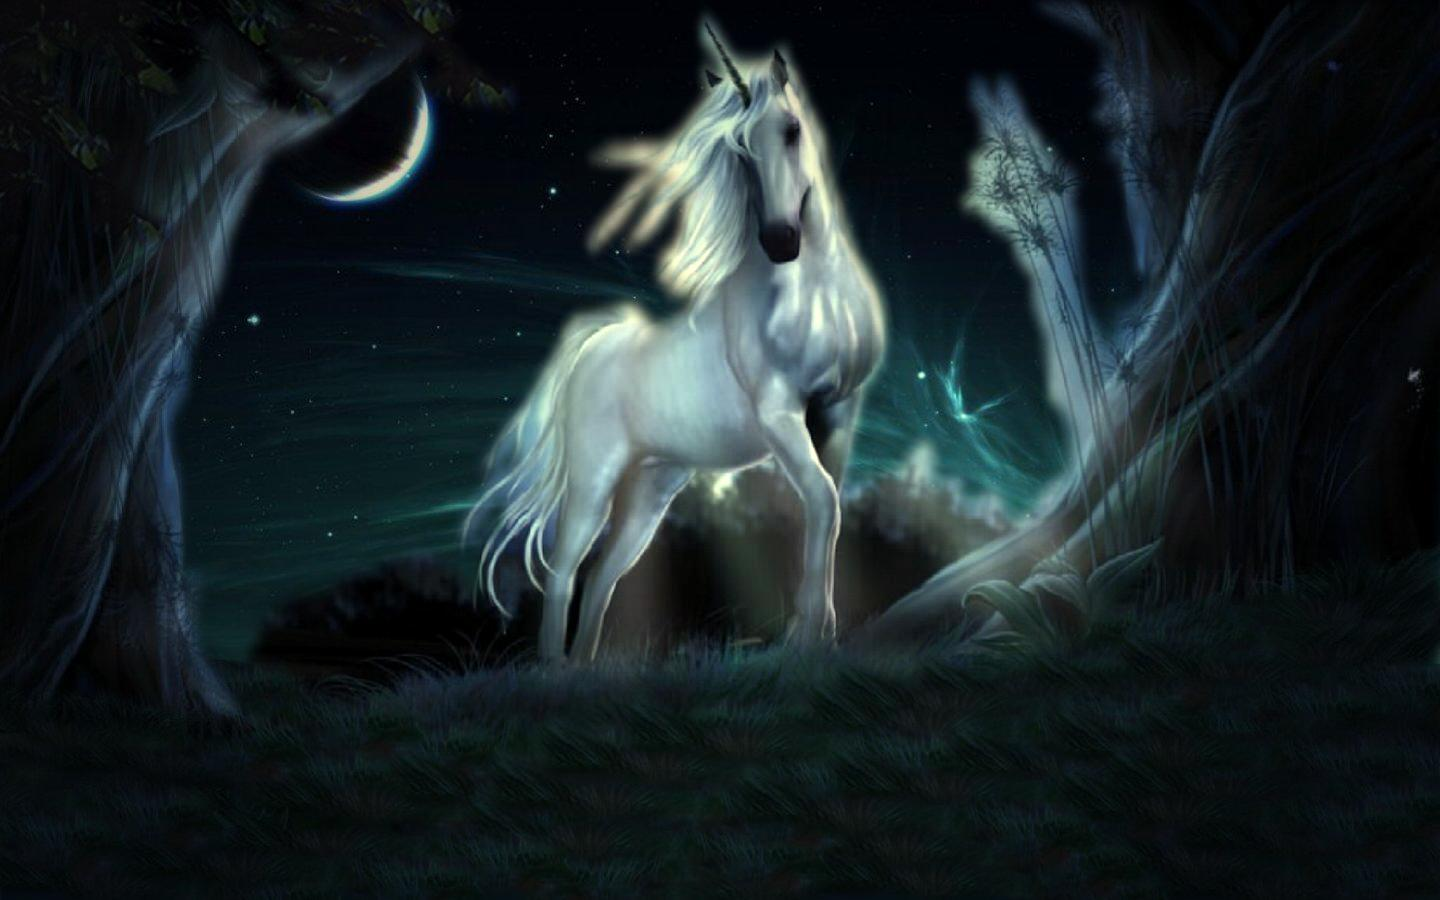 Hd wallpaper unicorn -  Unicorn Hd Widescreen Wallpaper Download